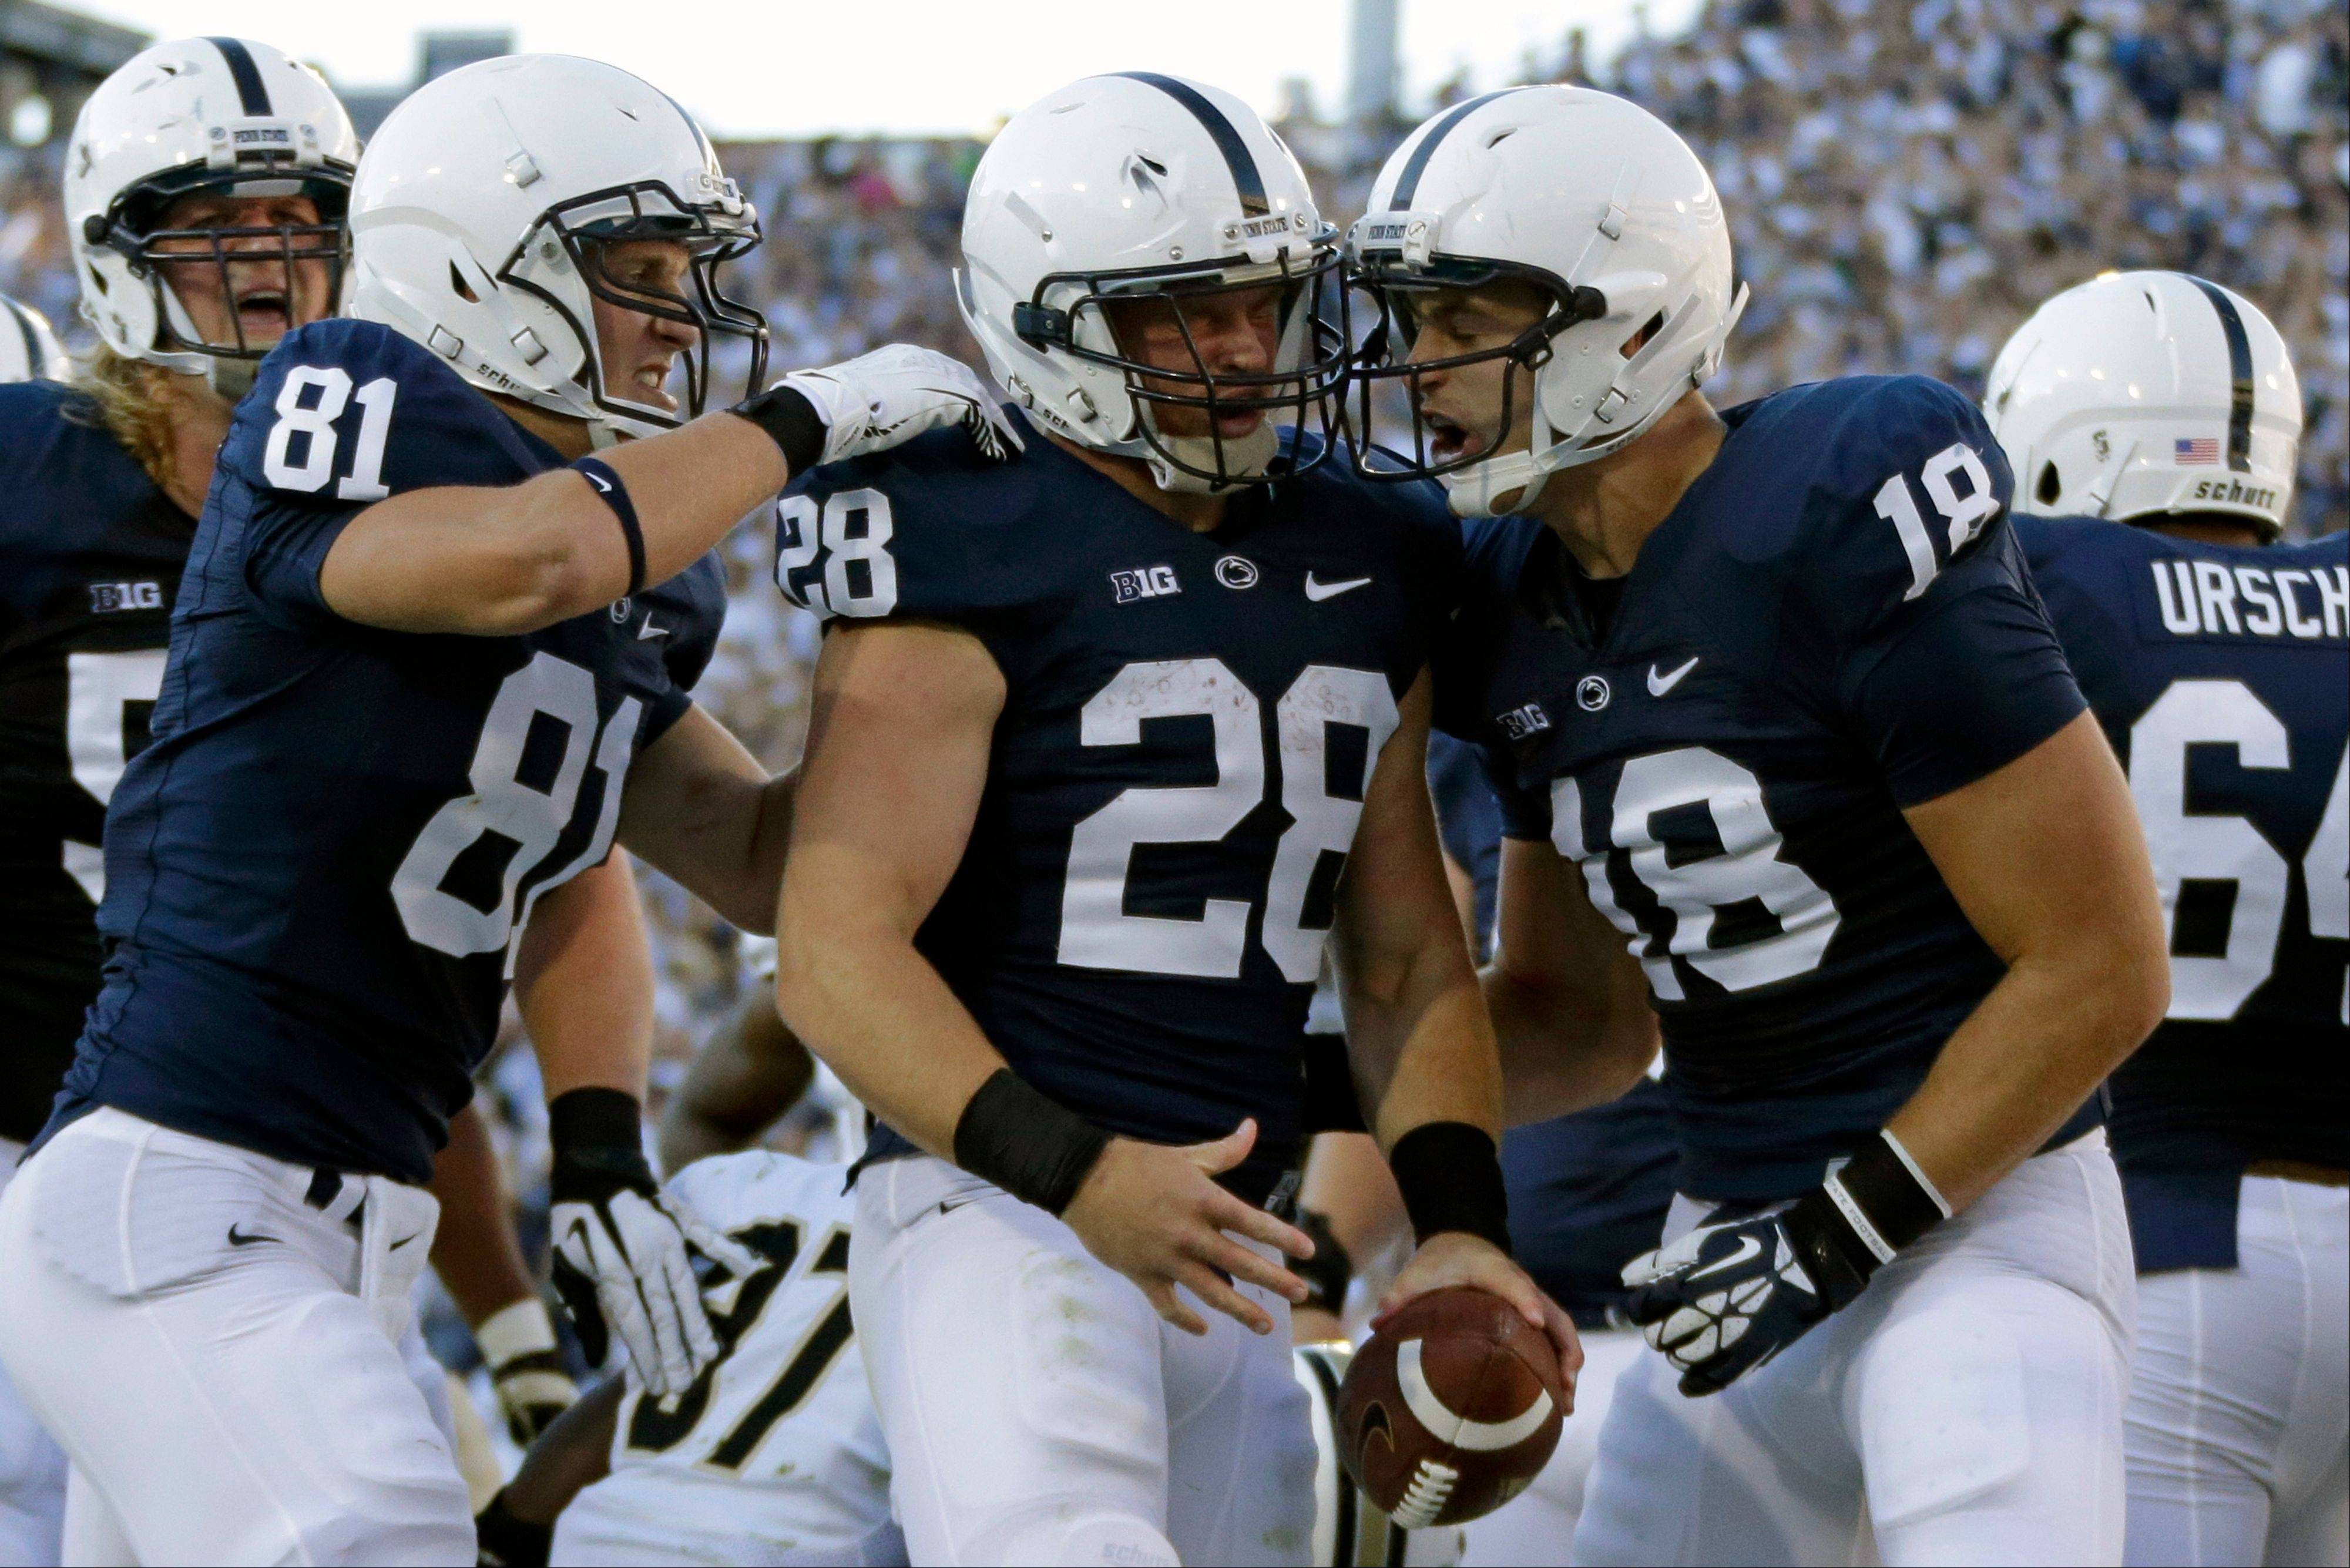 Penn State running back Zach Zwinak (28) celebrates with teammates Adam Breneman (81) and Jesse James (18) after rushing for a touchdown during the first quarter of last weekend�s game against Central Florida in State College, Pa.